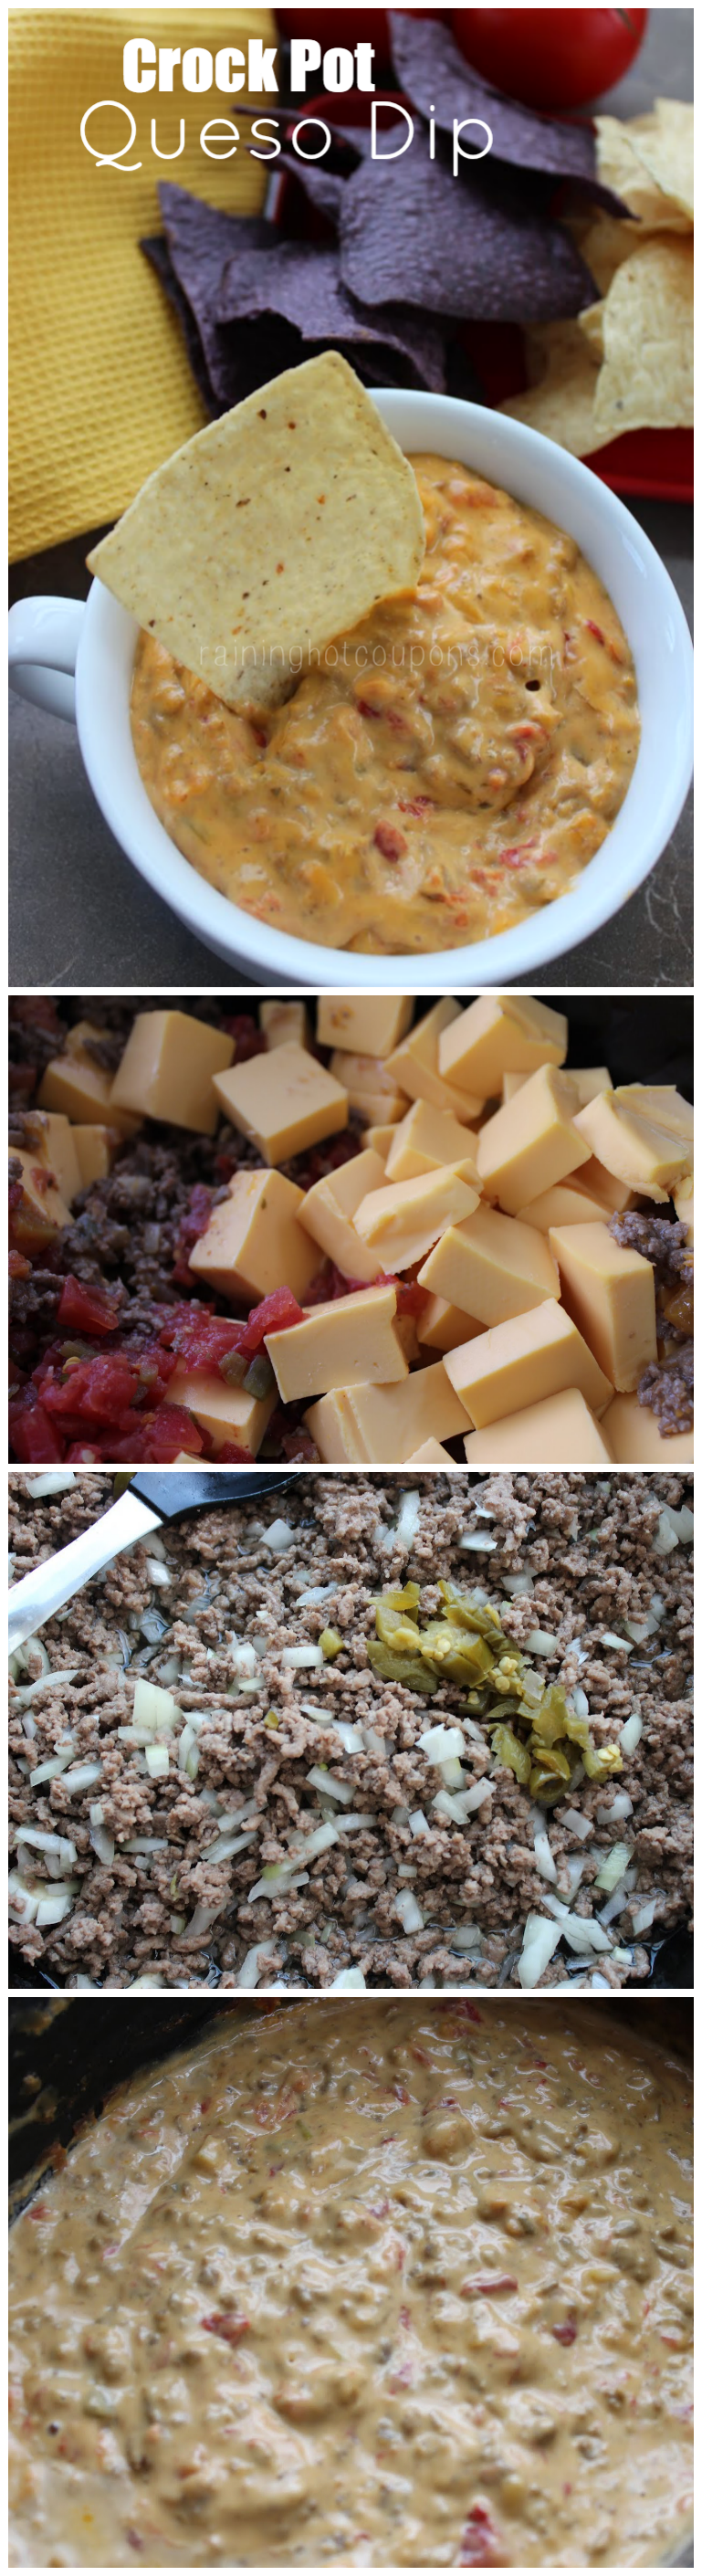 queso dip collage